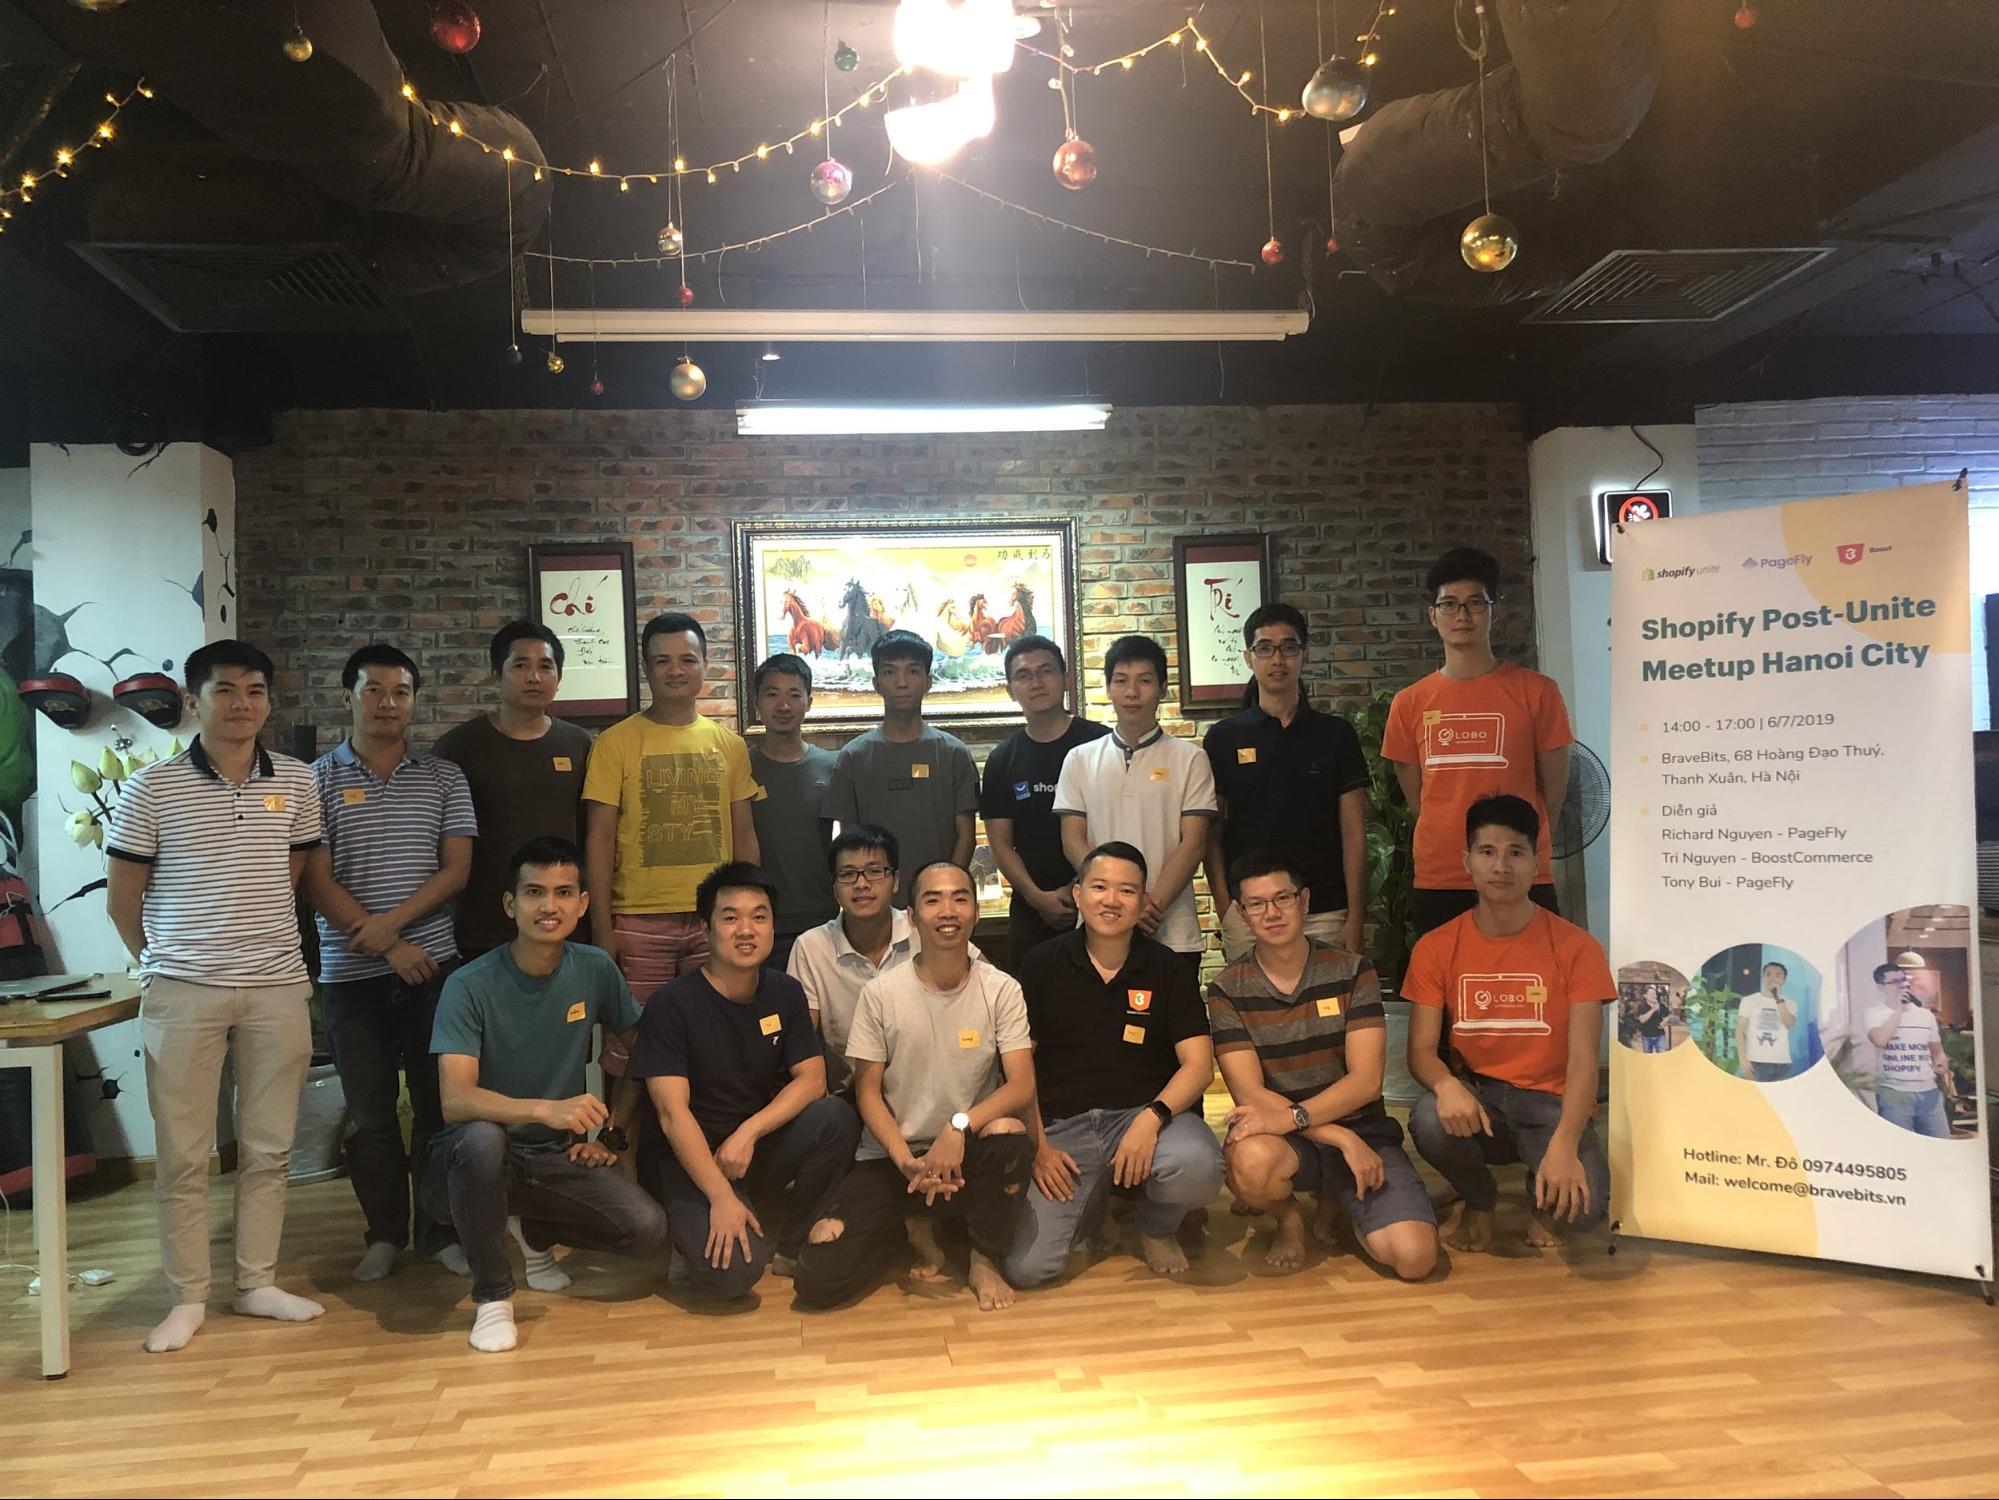 shopify post unite meetup 4